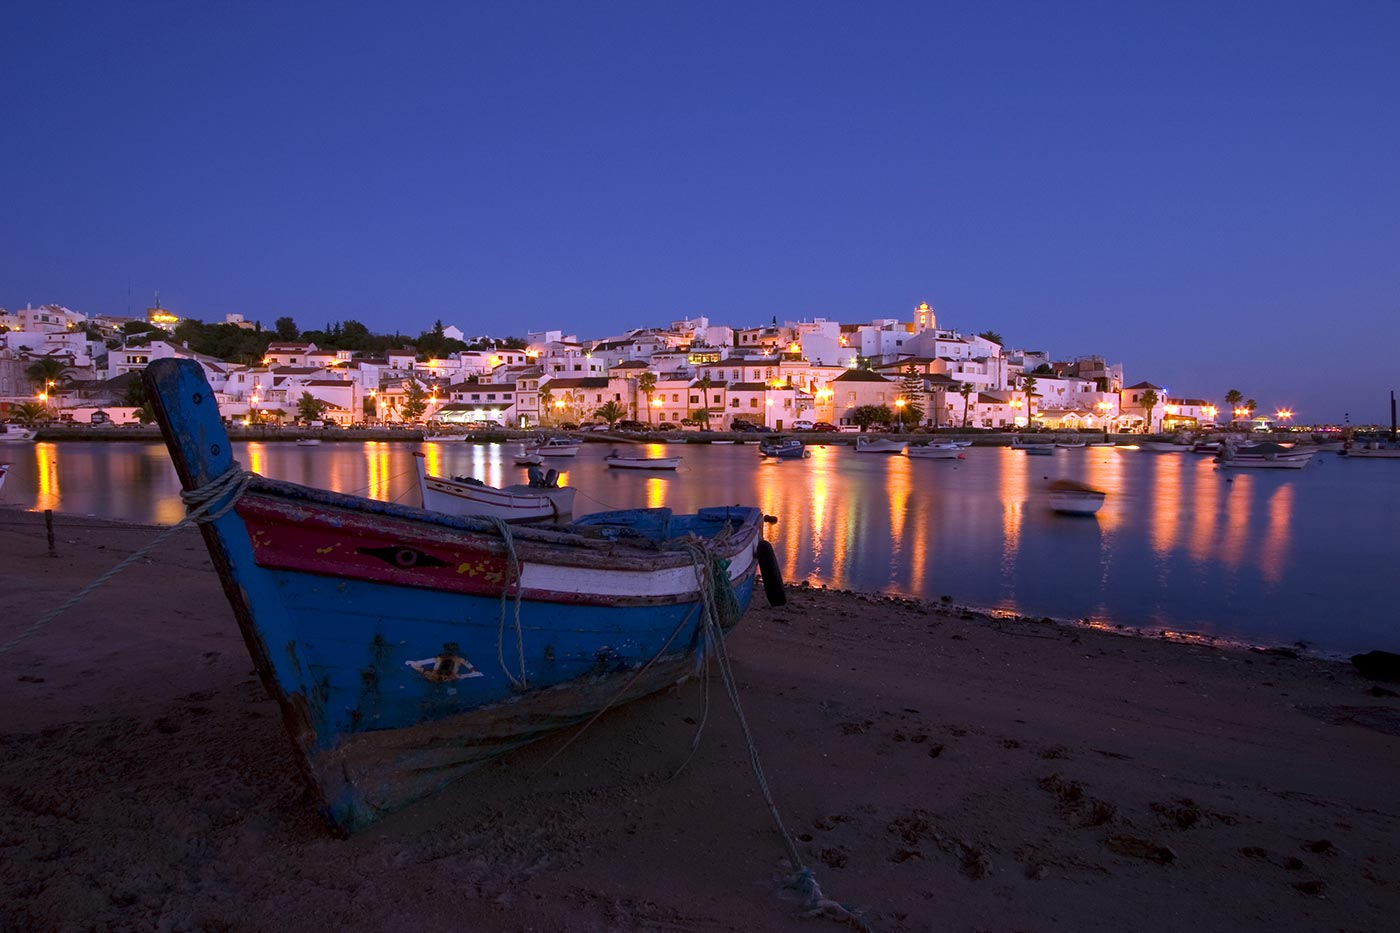 Algarve at night